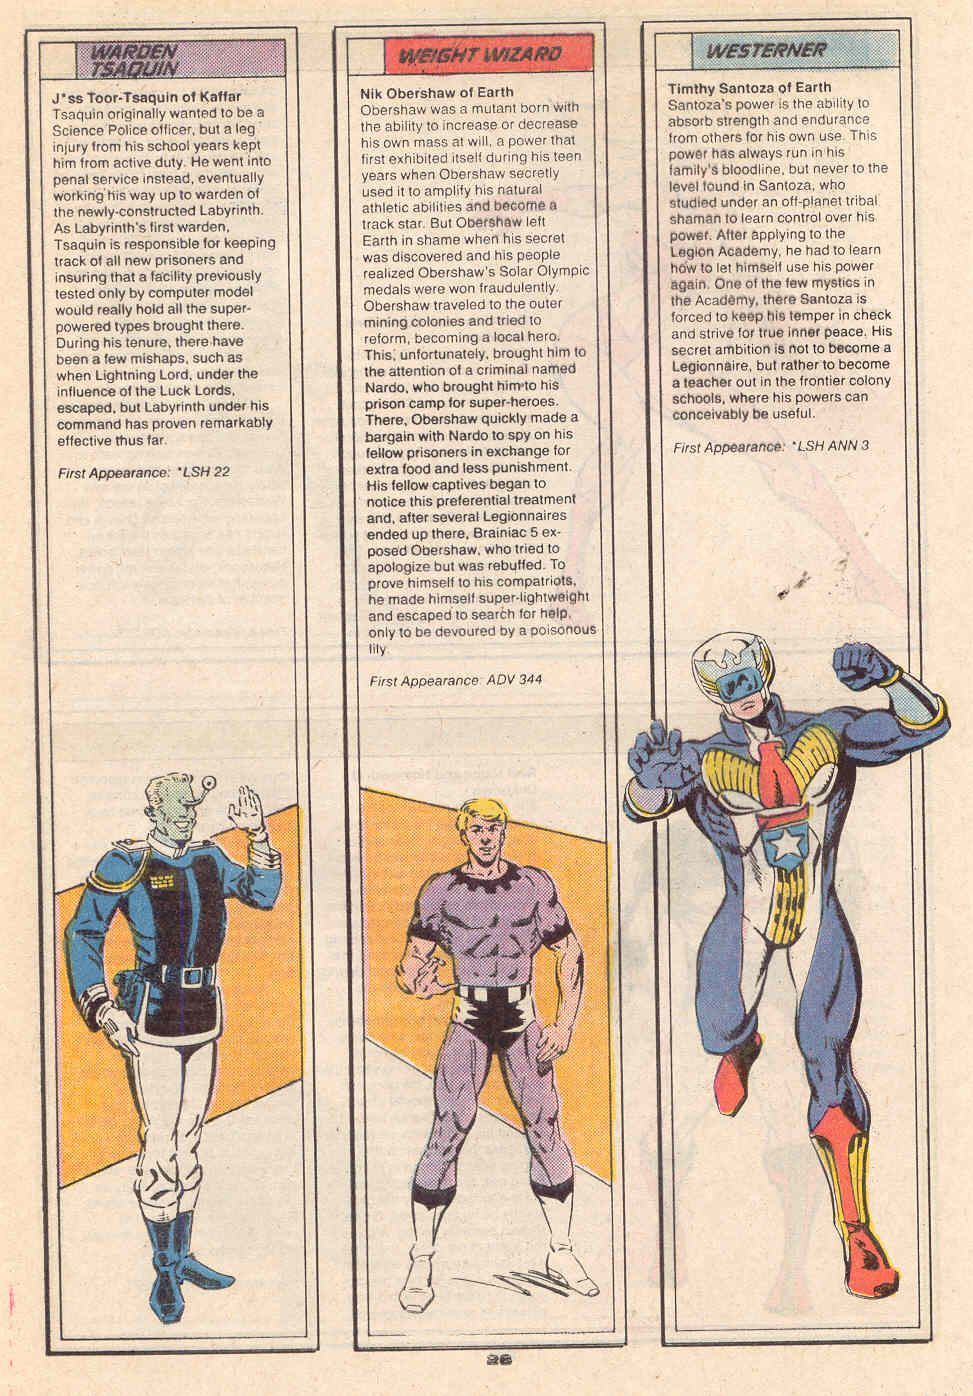 Warden Tsaquin and Weight Wizard by Terry Tidwell and Jim Sanders III; Westerner by Terry Tidwell and Kez Wilson - Who's Who in the Legion of Super-Heroes #7